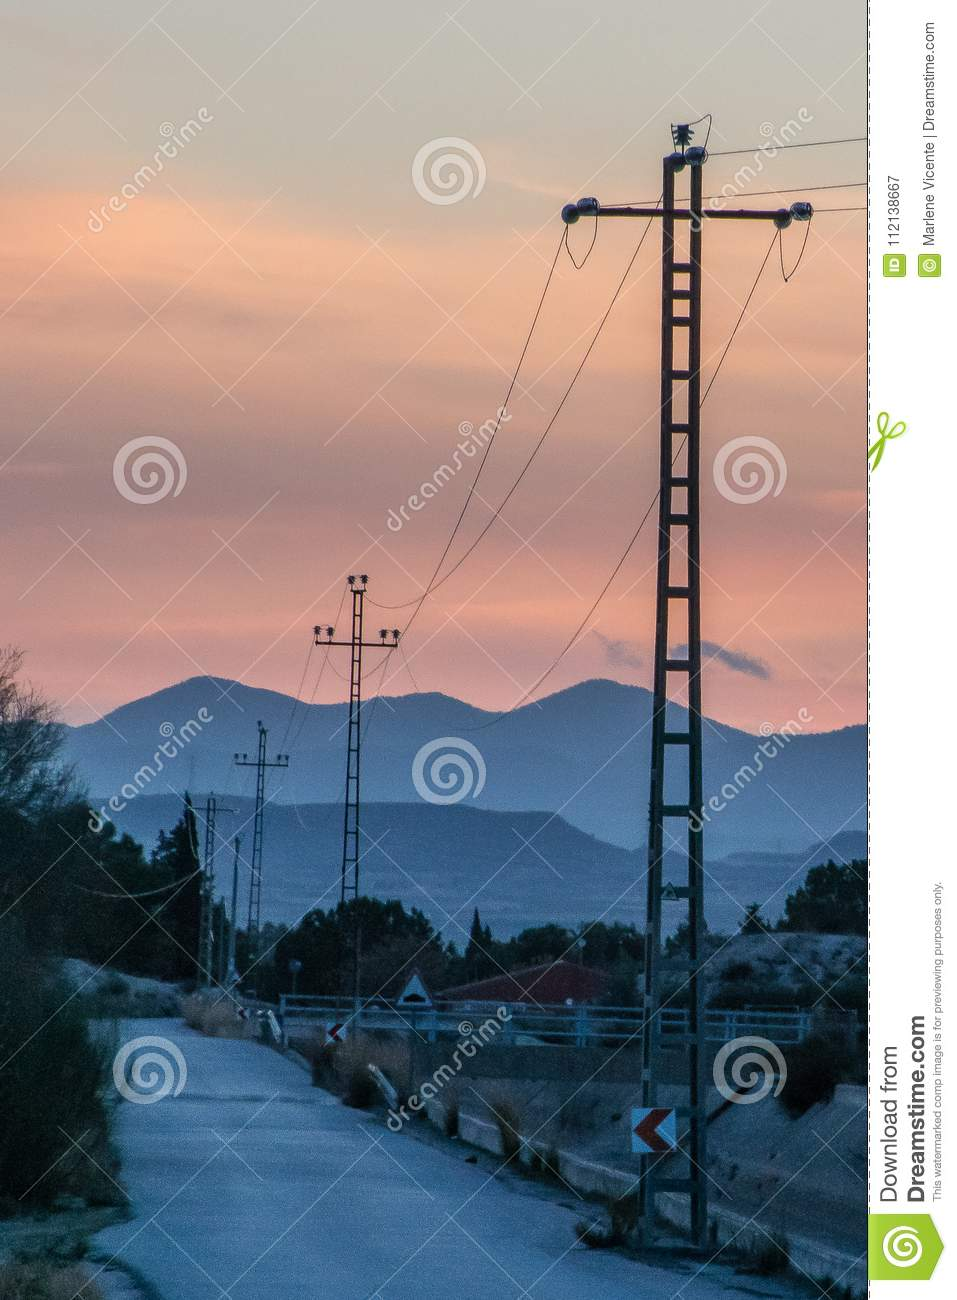 Image of electricity towers at sunset